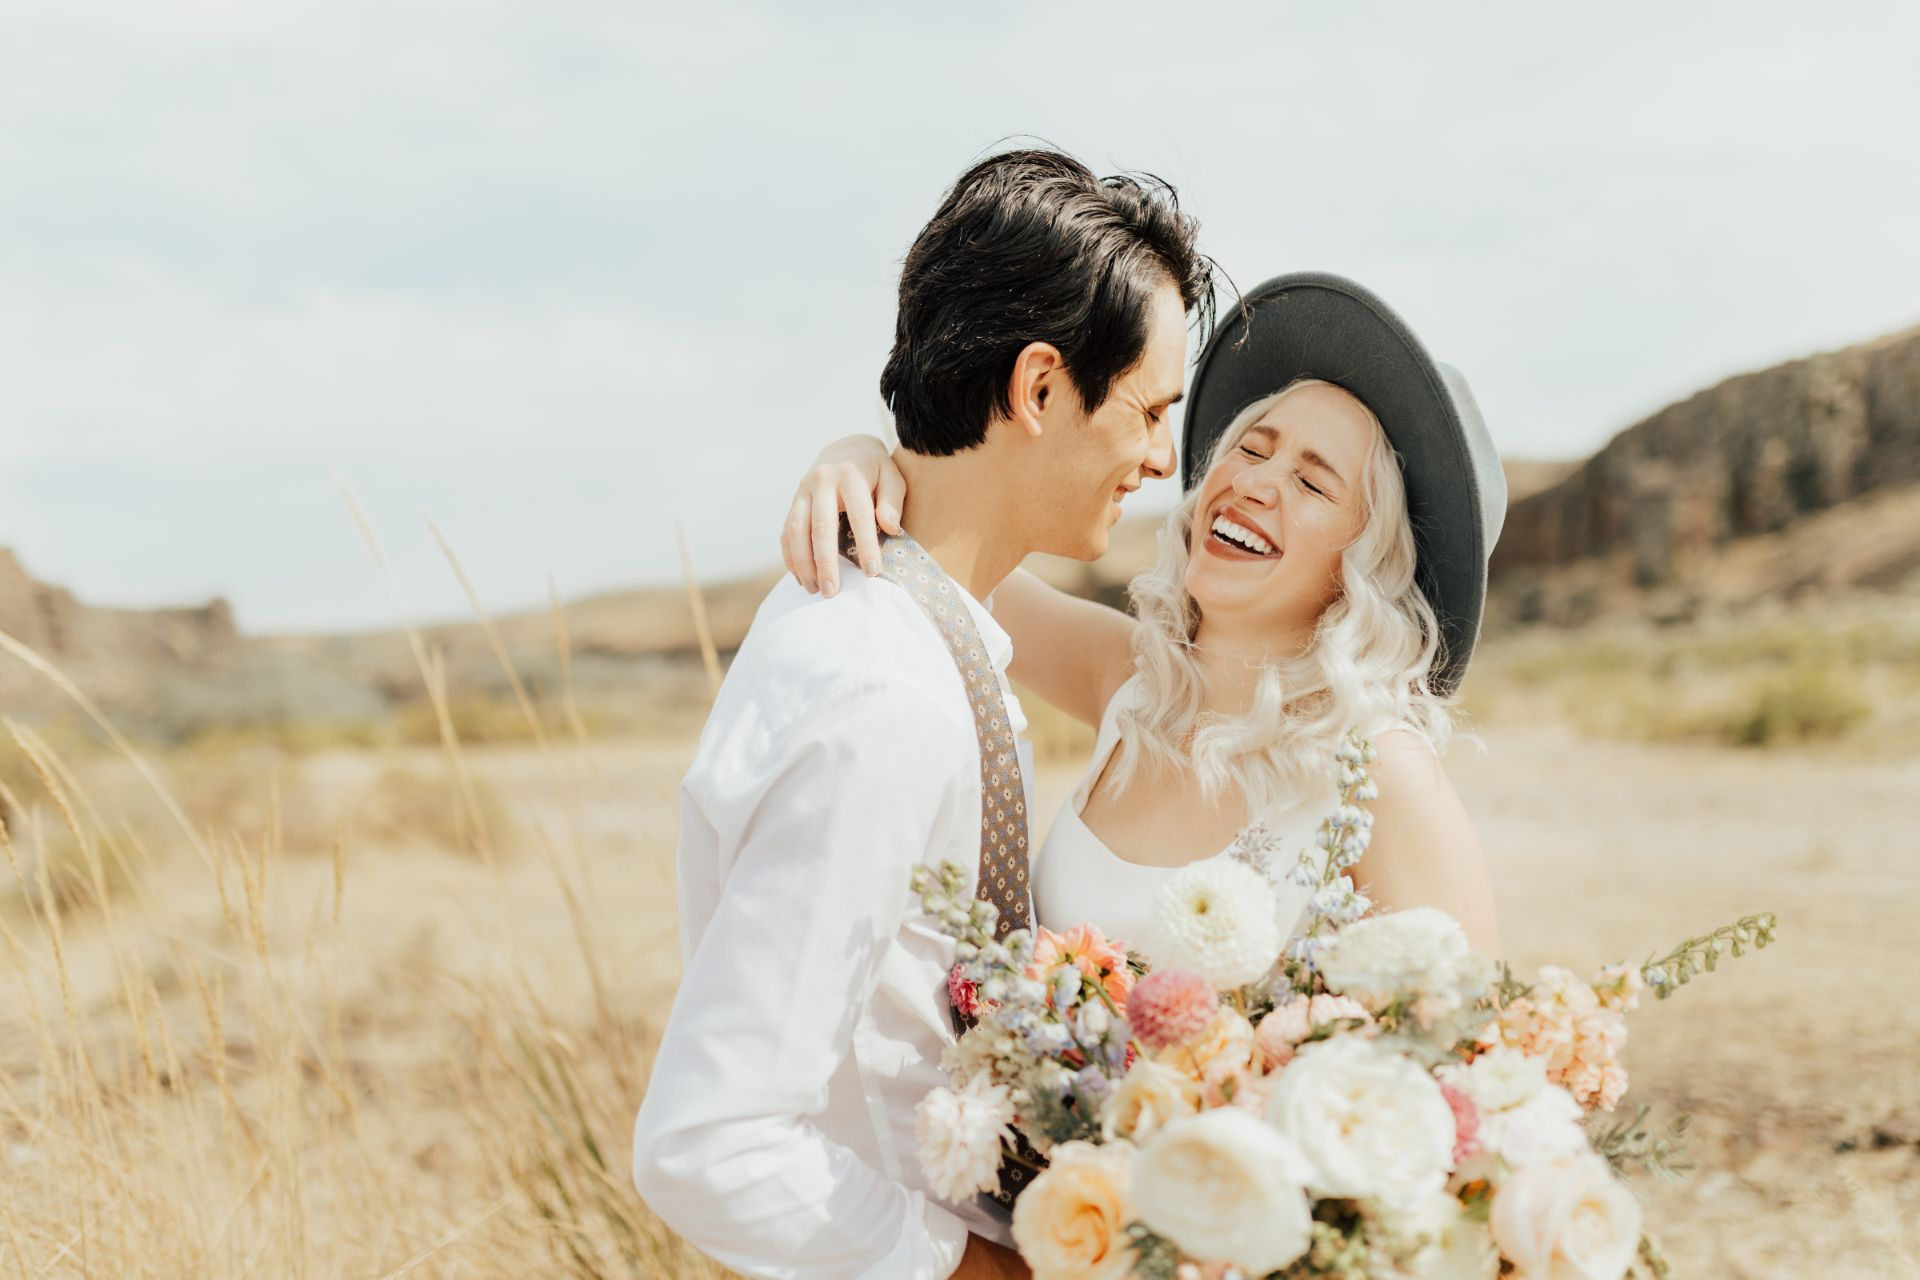 seattleelopement_seattlweddingphotographer_easternwashington_tawnyhobie_rachelsyrisko-87-large